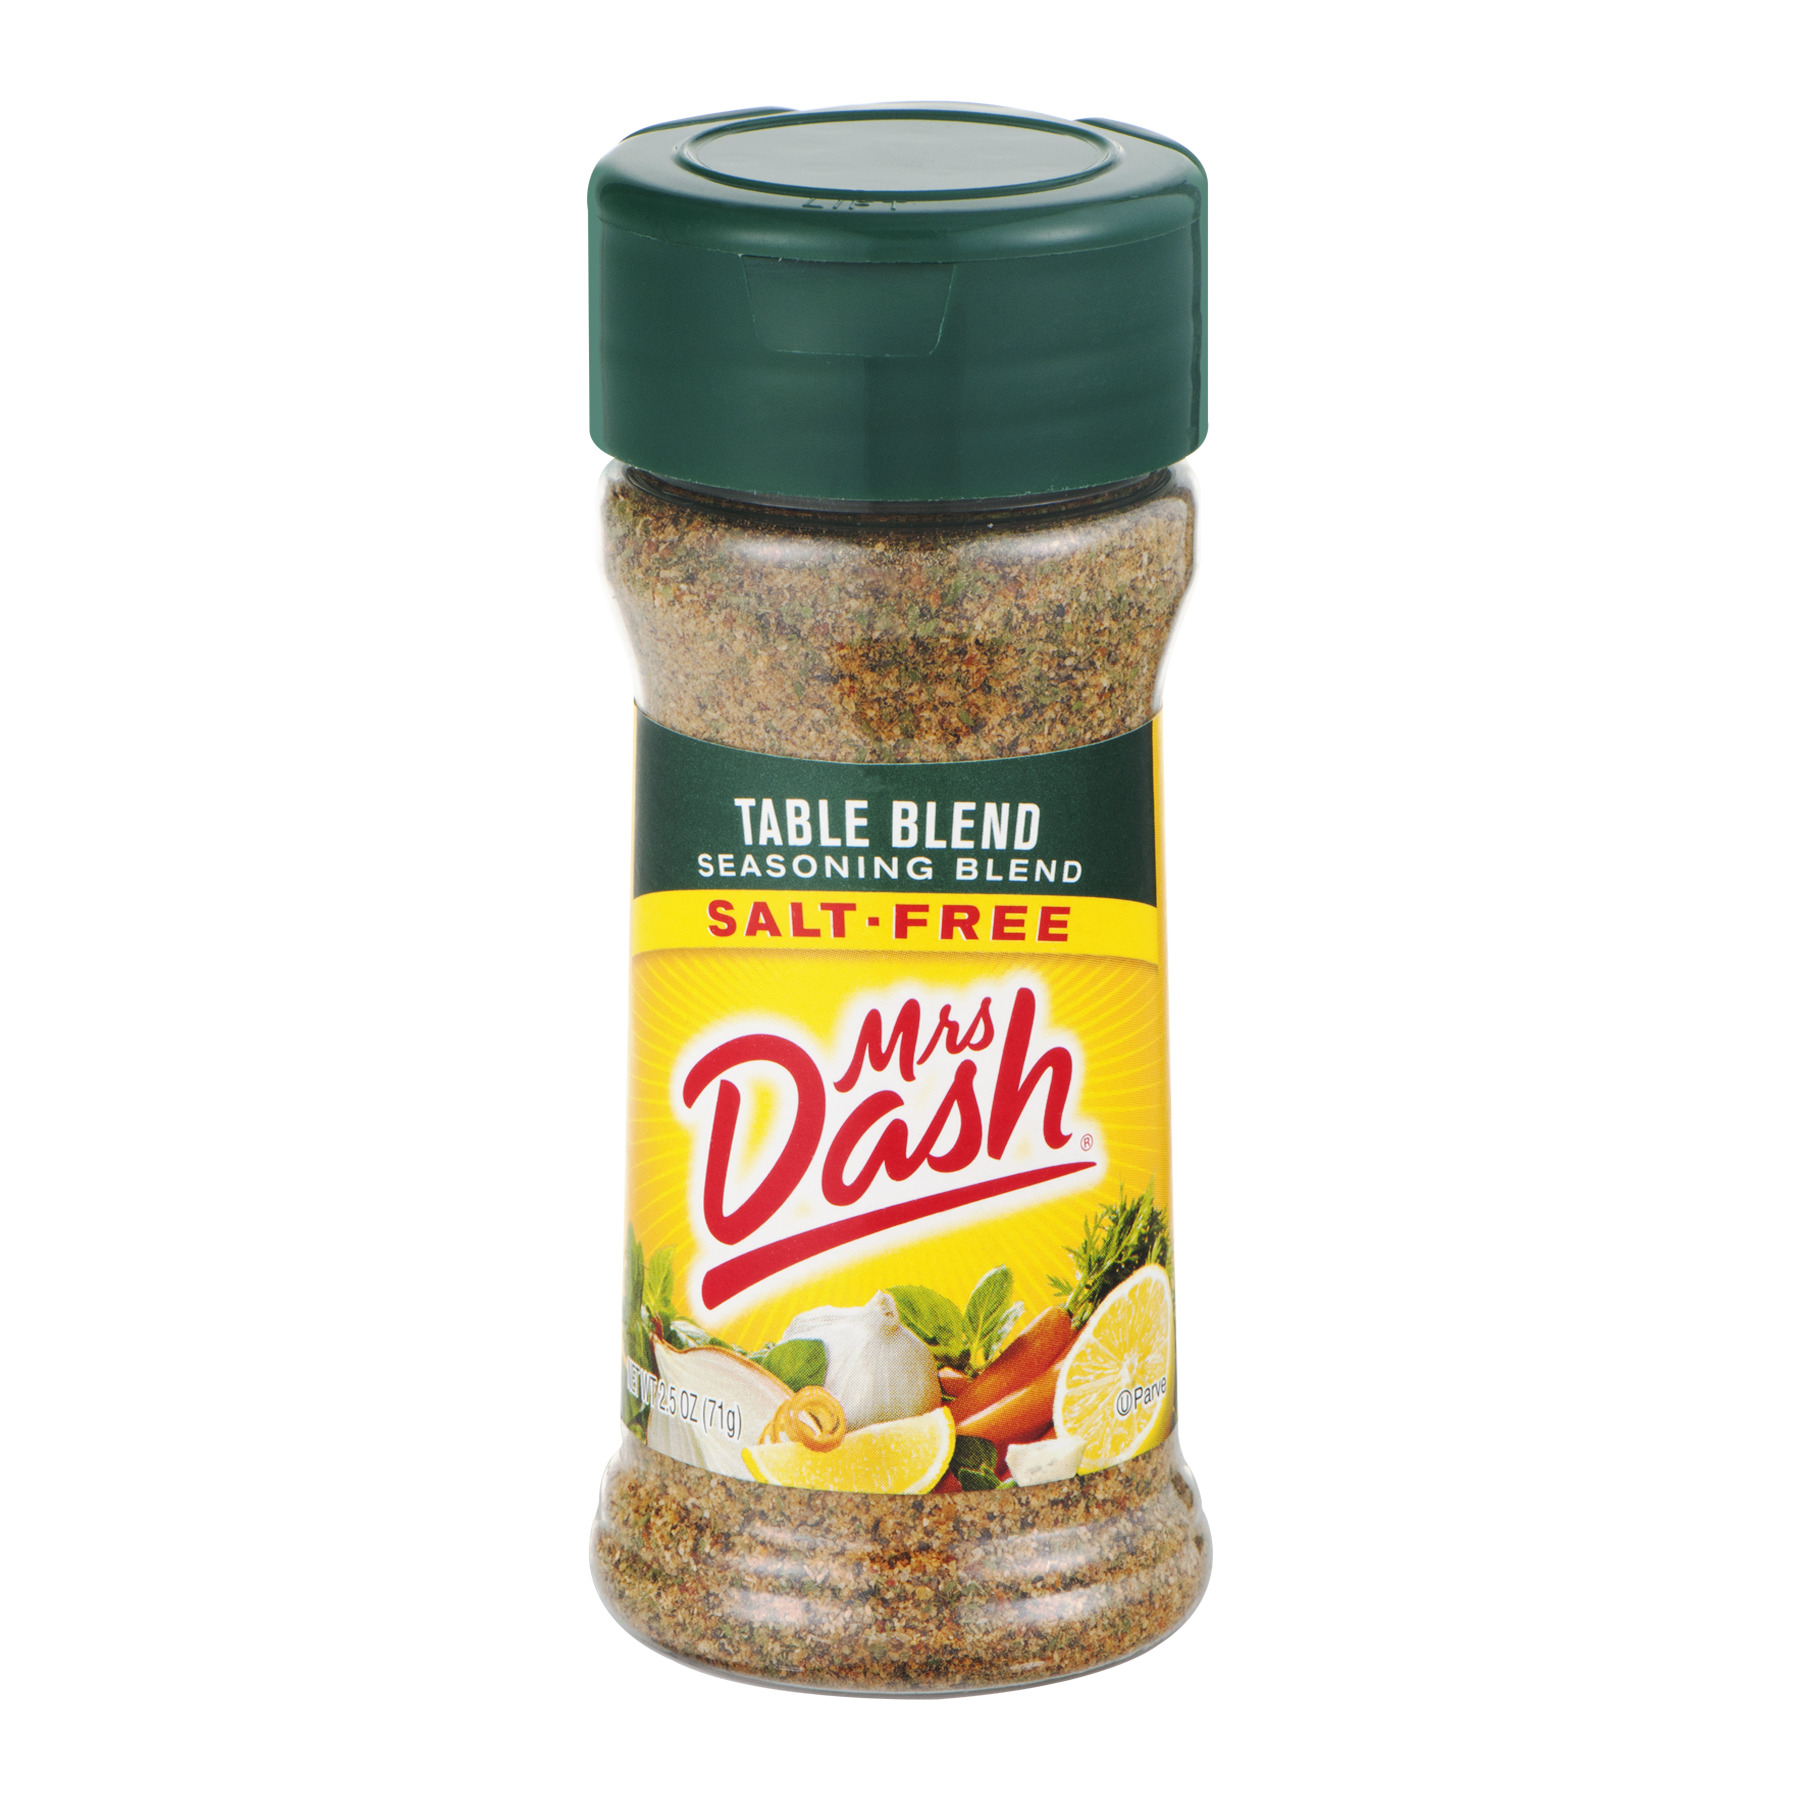 (3 Pack) Mrs. Dash Table Blend Salt-Free Seasoning Blend, 2.5 Oz